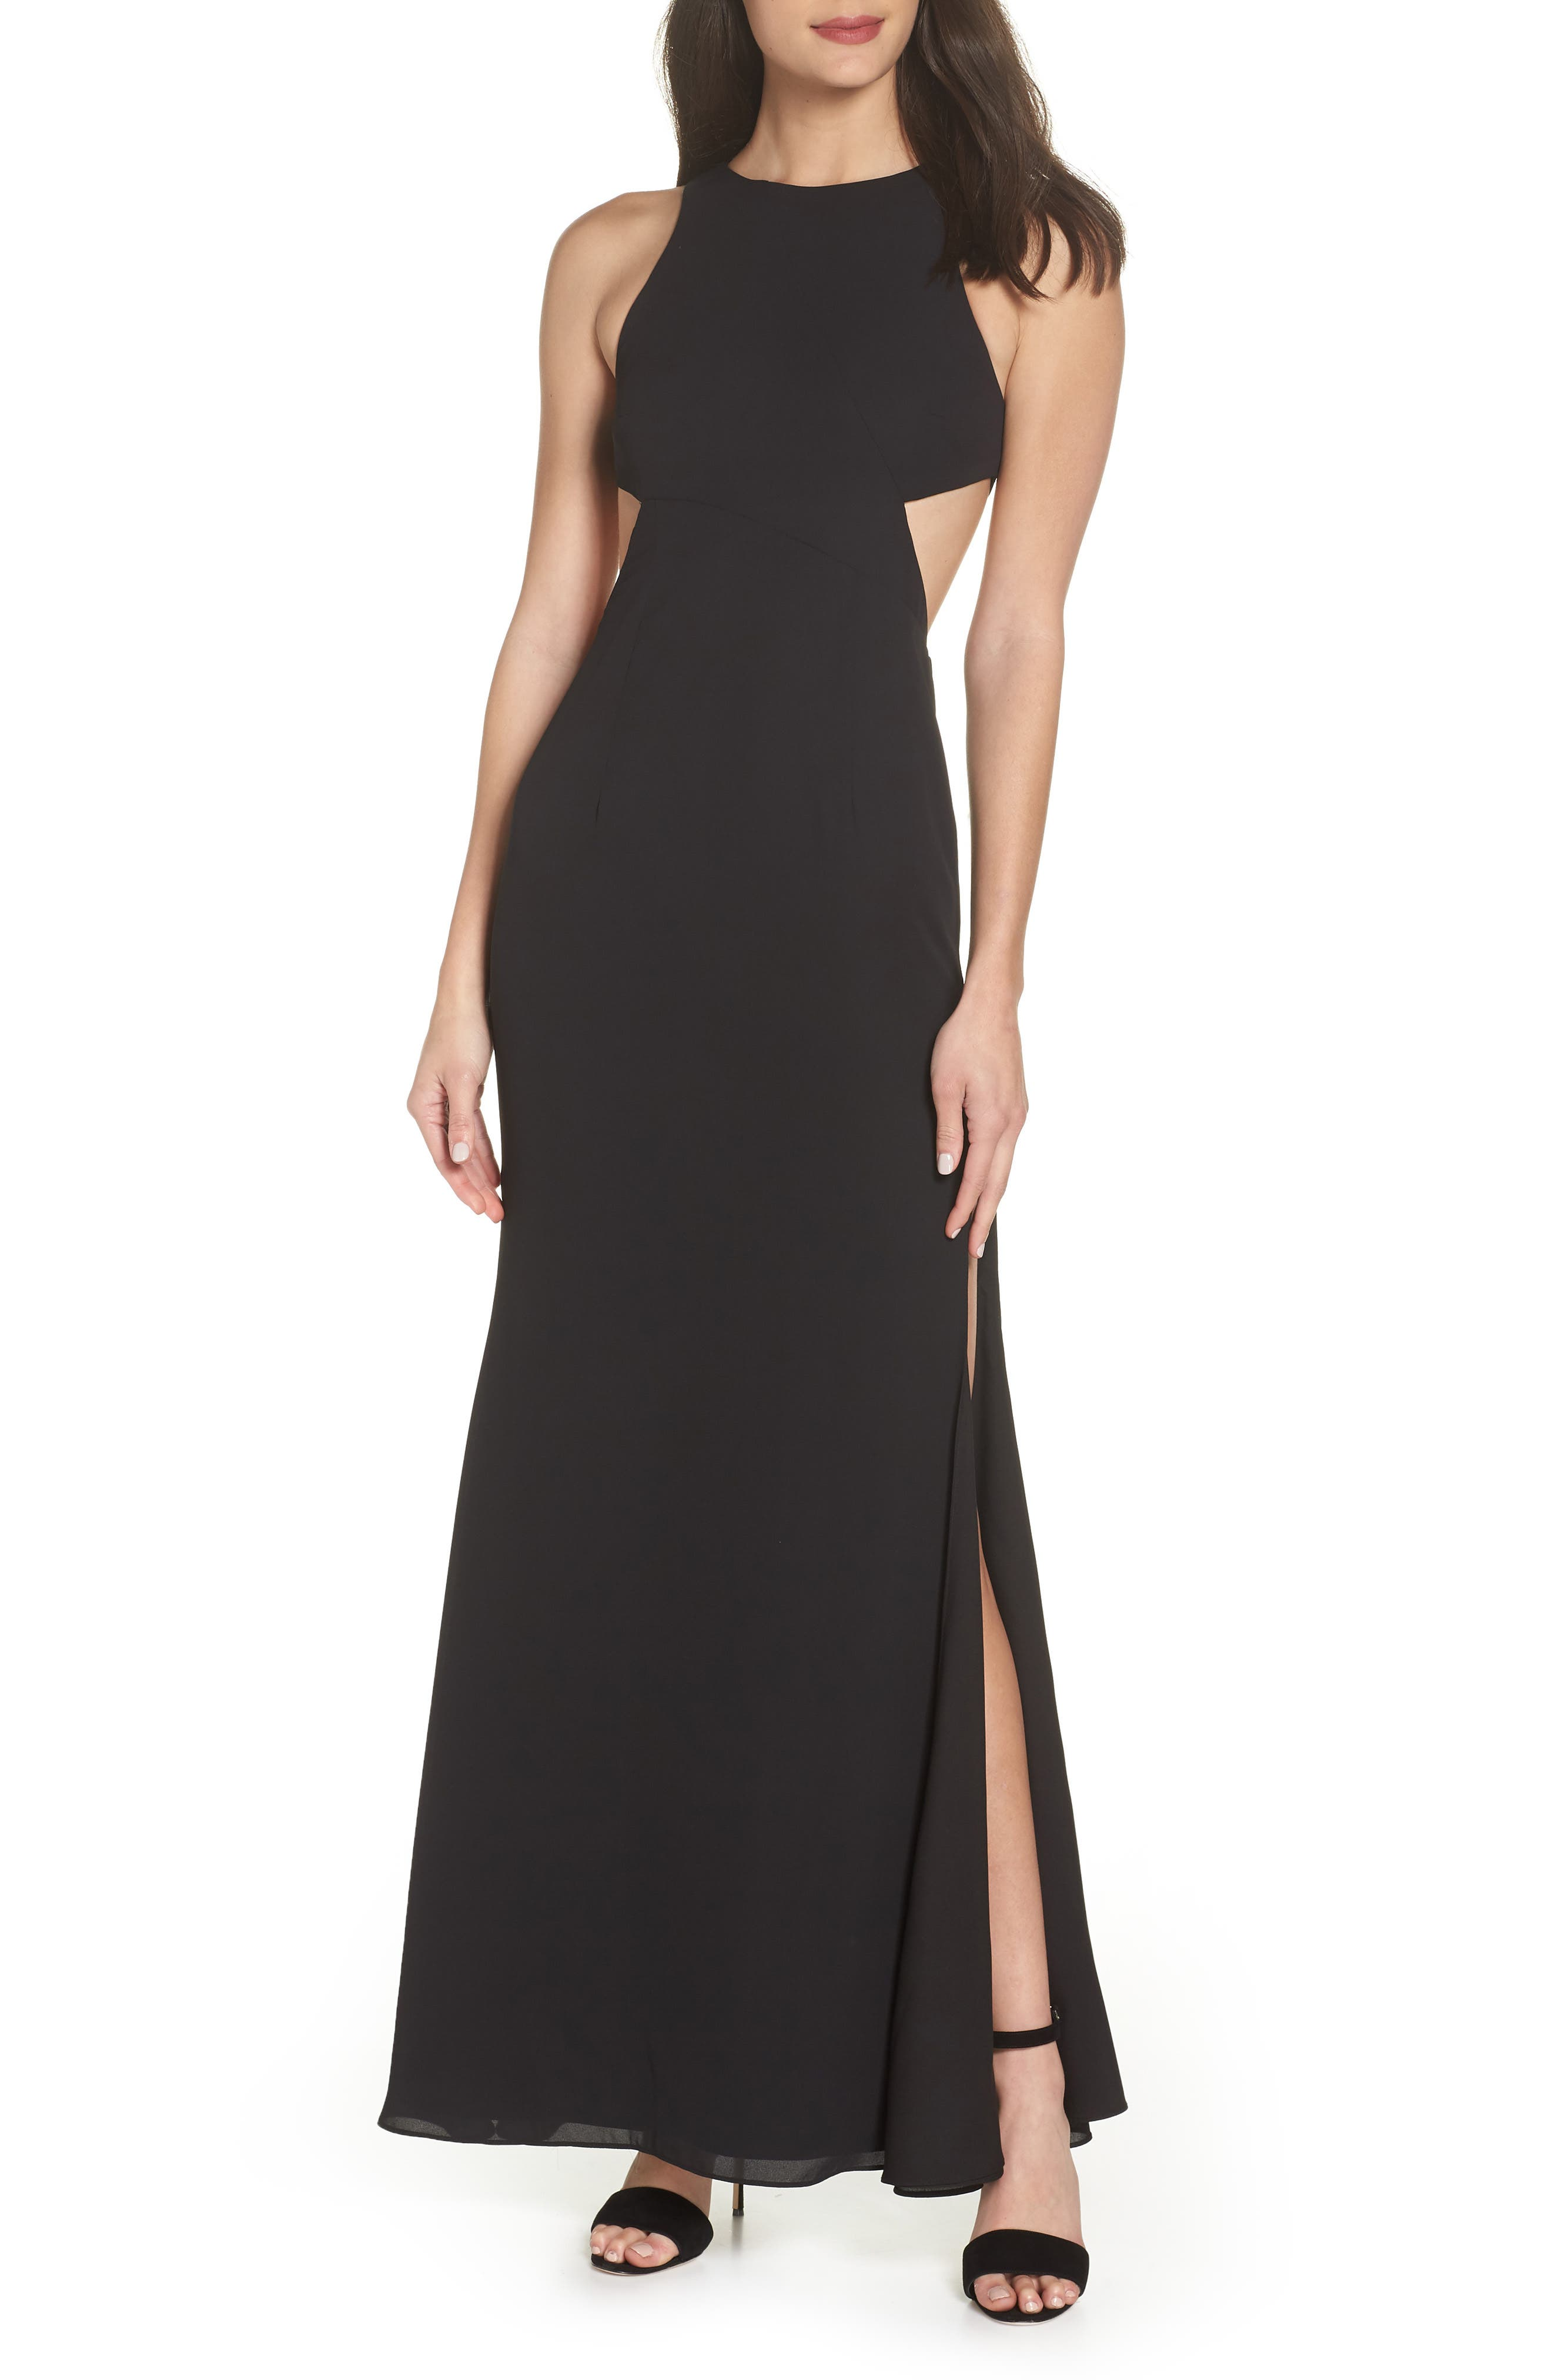 Fame & Partners The Midheaven Gown,                         Main,                         color, Black